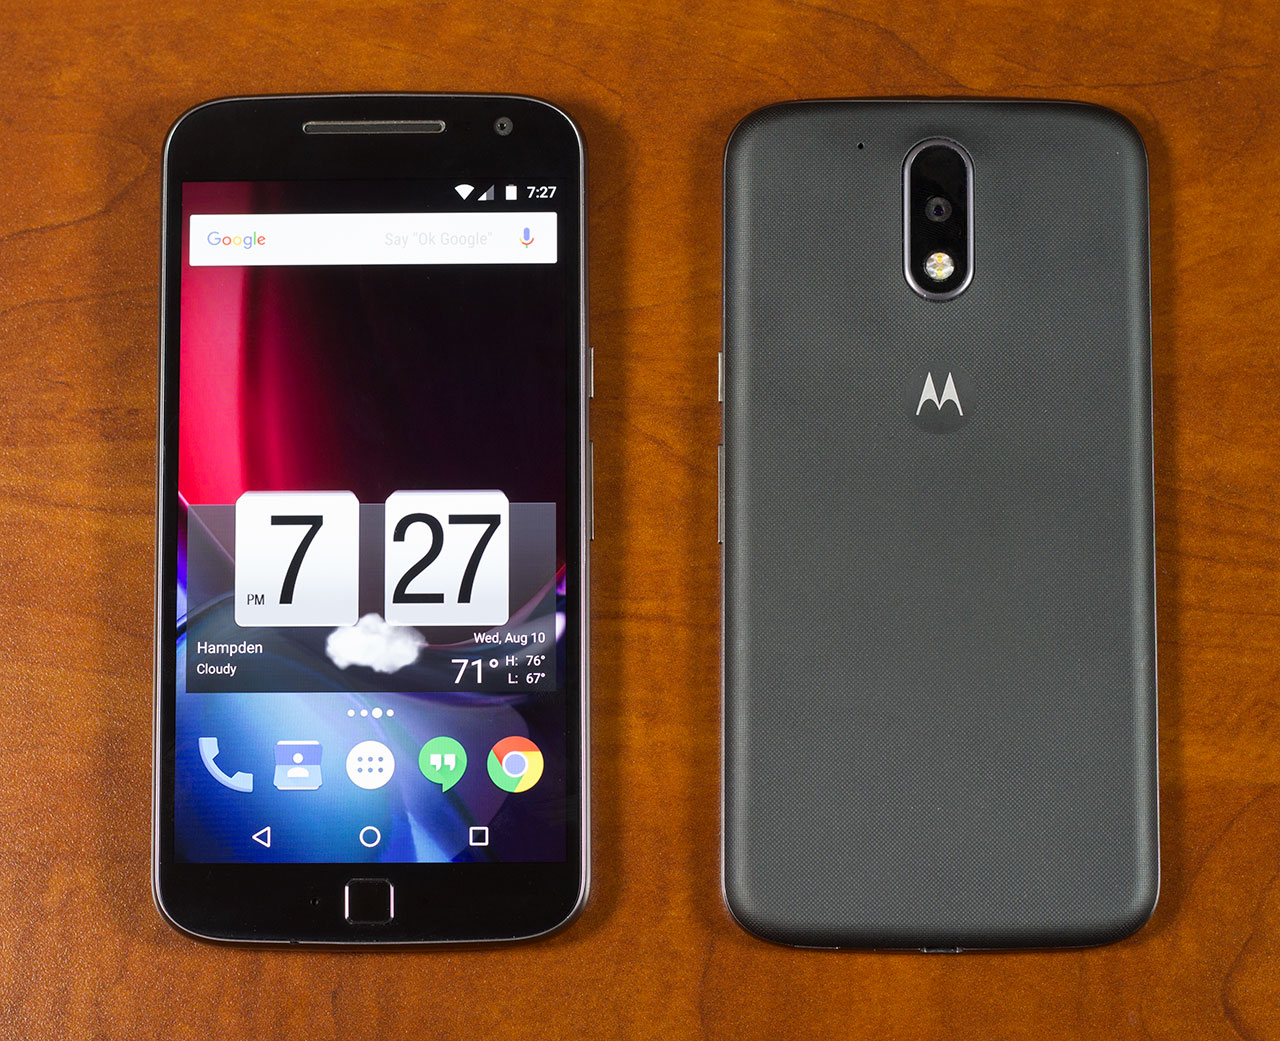 Moto G4 And Moto G4 Plus Review: Quality, Budget Android Handsets